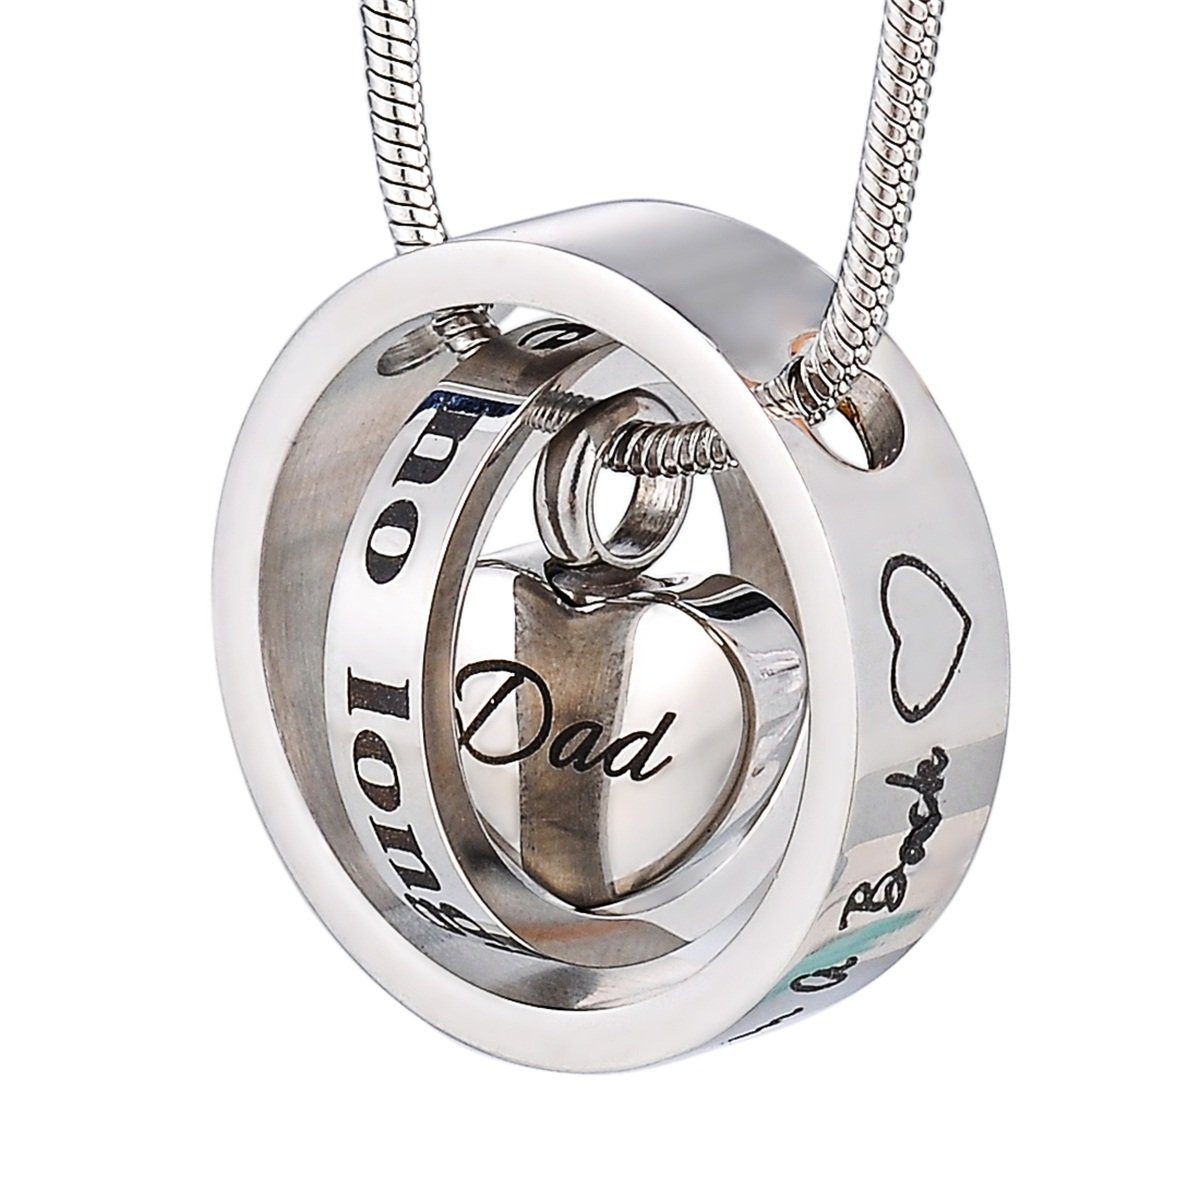 Housweety Cremation Urn Necklace Keepsake Ashes Holder Memorial Urn Pendants with I love you to the moon and back Dad by Housweety (Image #1)